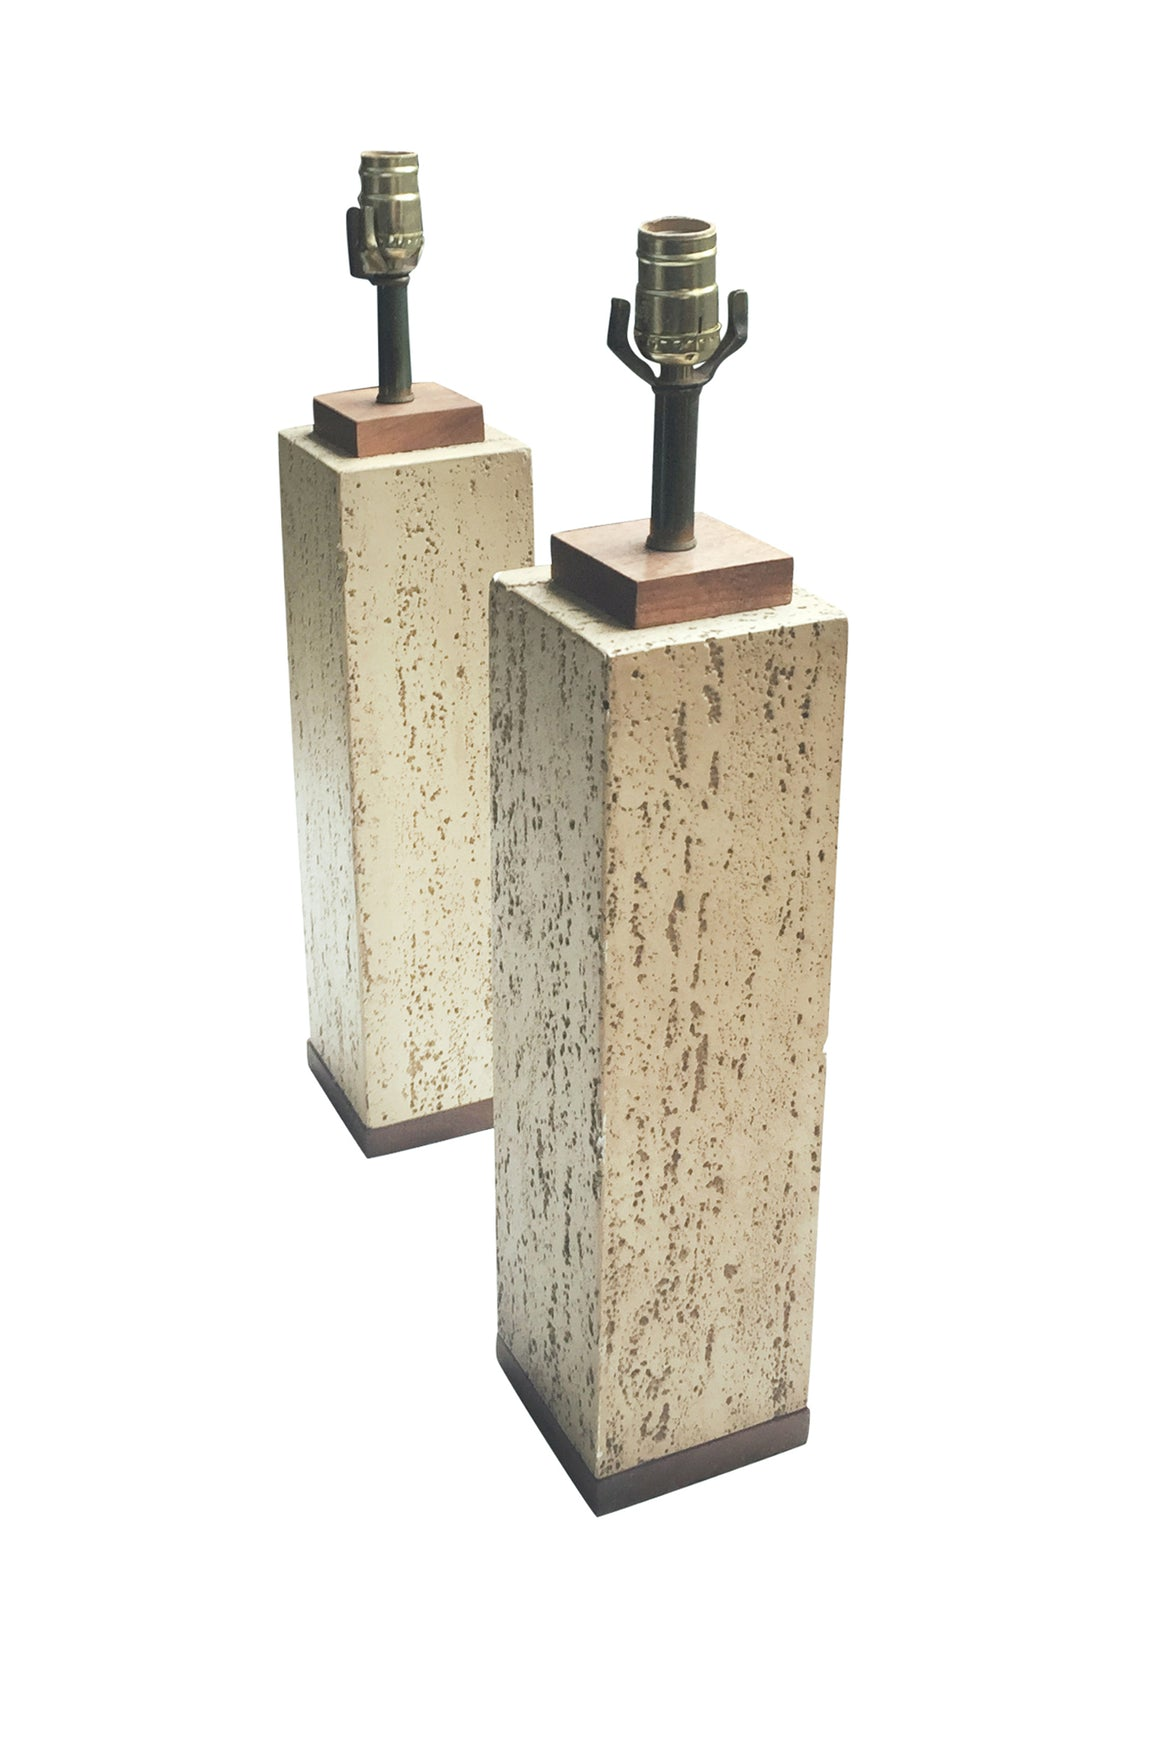 Pair of 1950s Plaster Column Lamps in a Travertine Finish